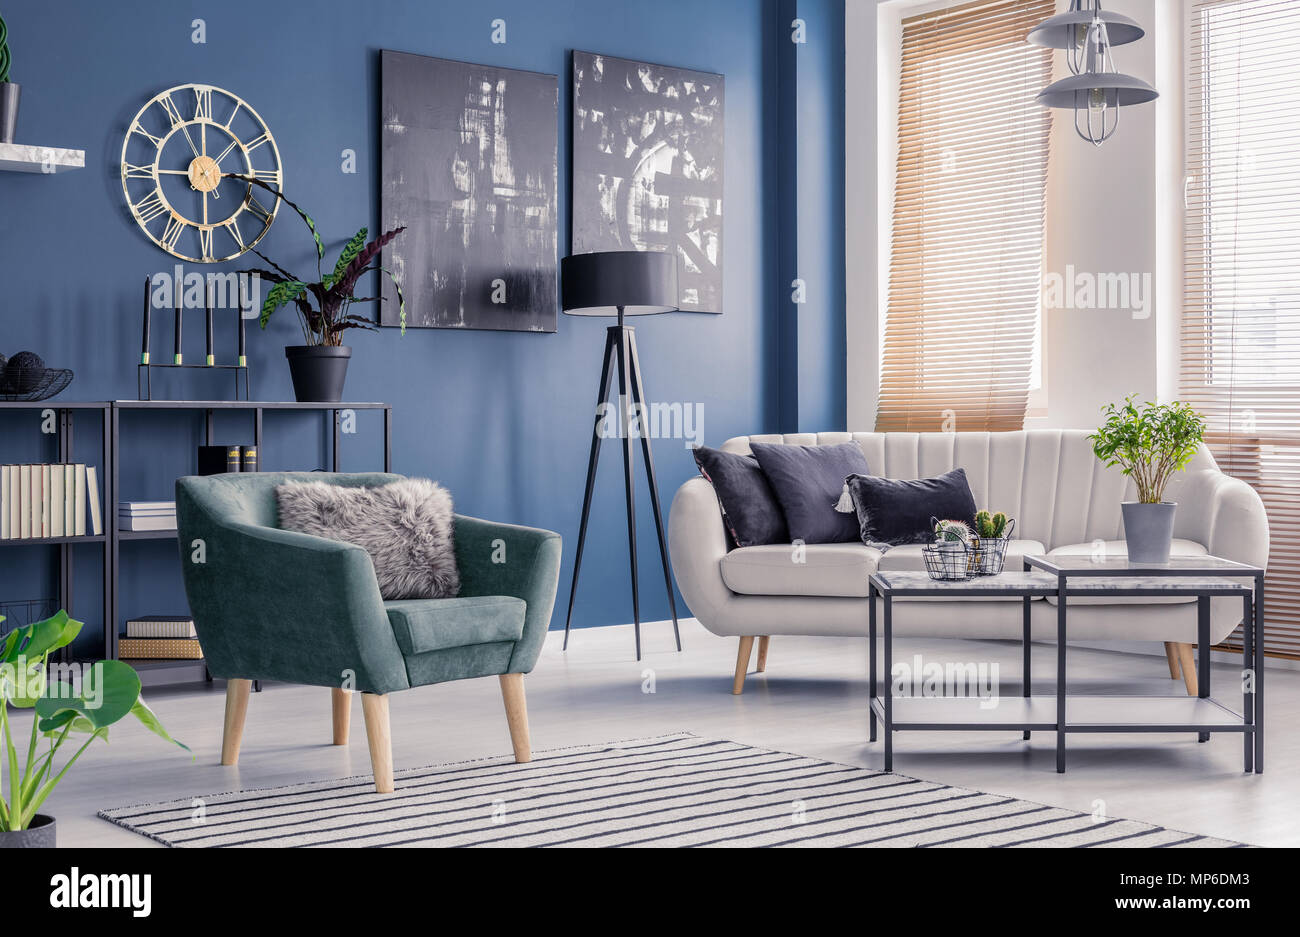 Picture of: Navy Blue Living Room Interior With Designer Decor Black Artwork And Elegant Comfortable Sofa And Armchair Stock Photo Alamy